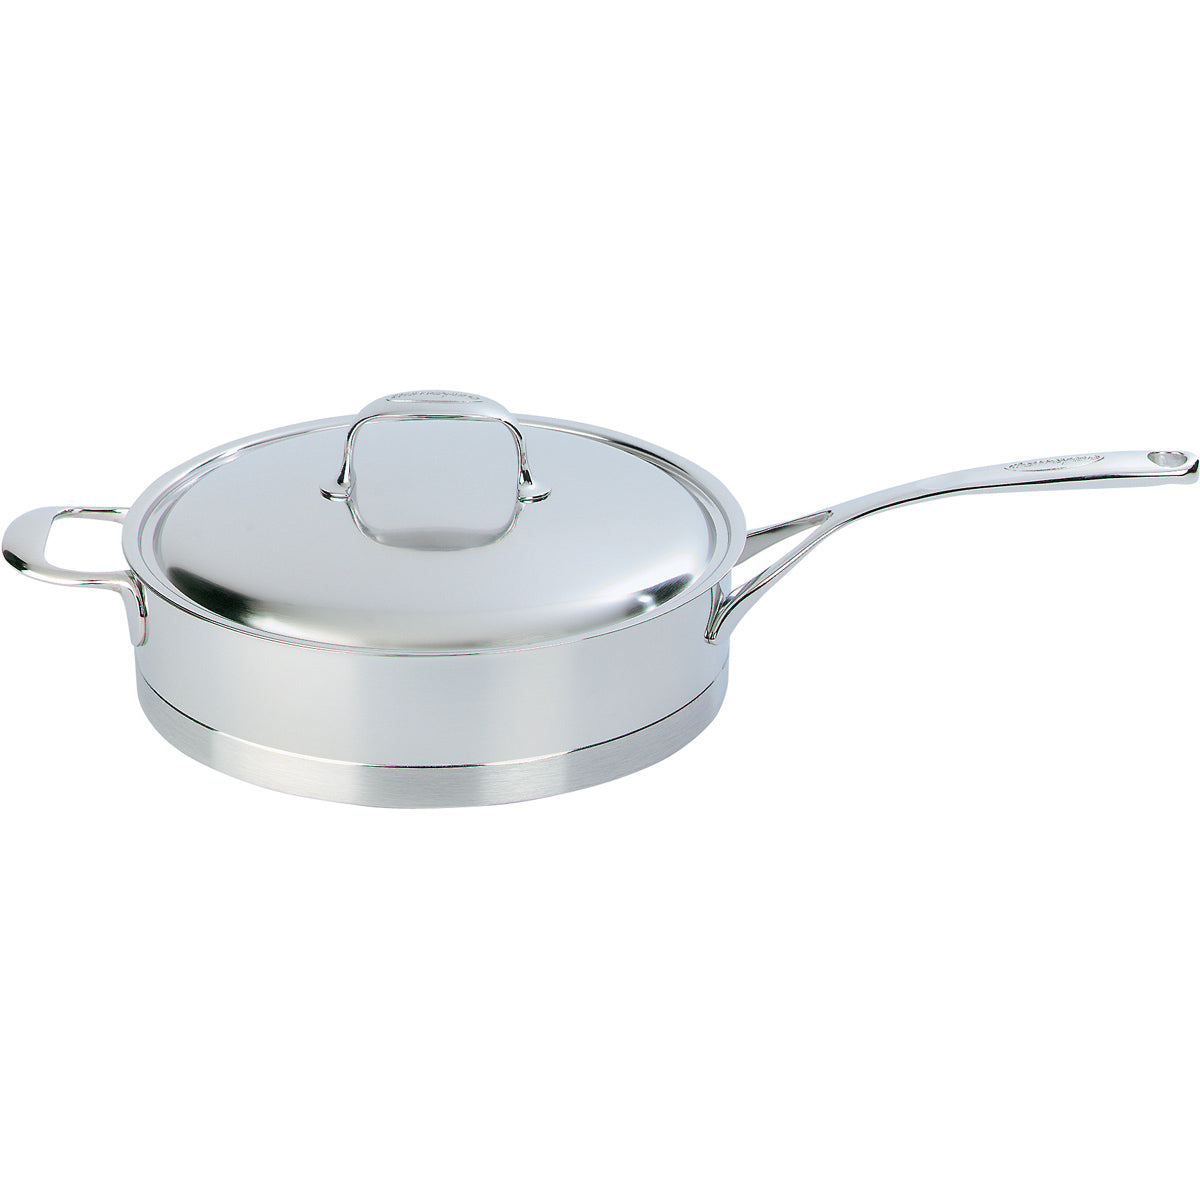 Atlantis Saute Pan with Lid - 3 Quart